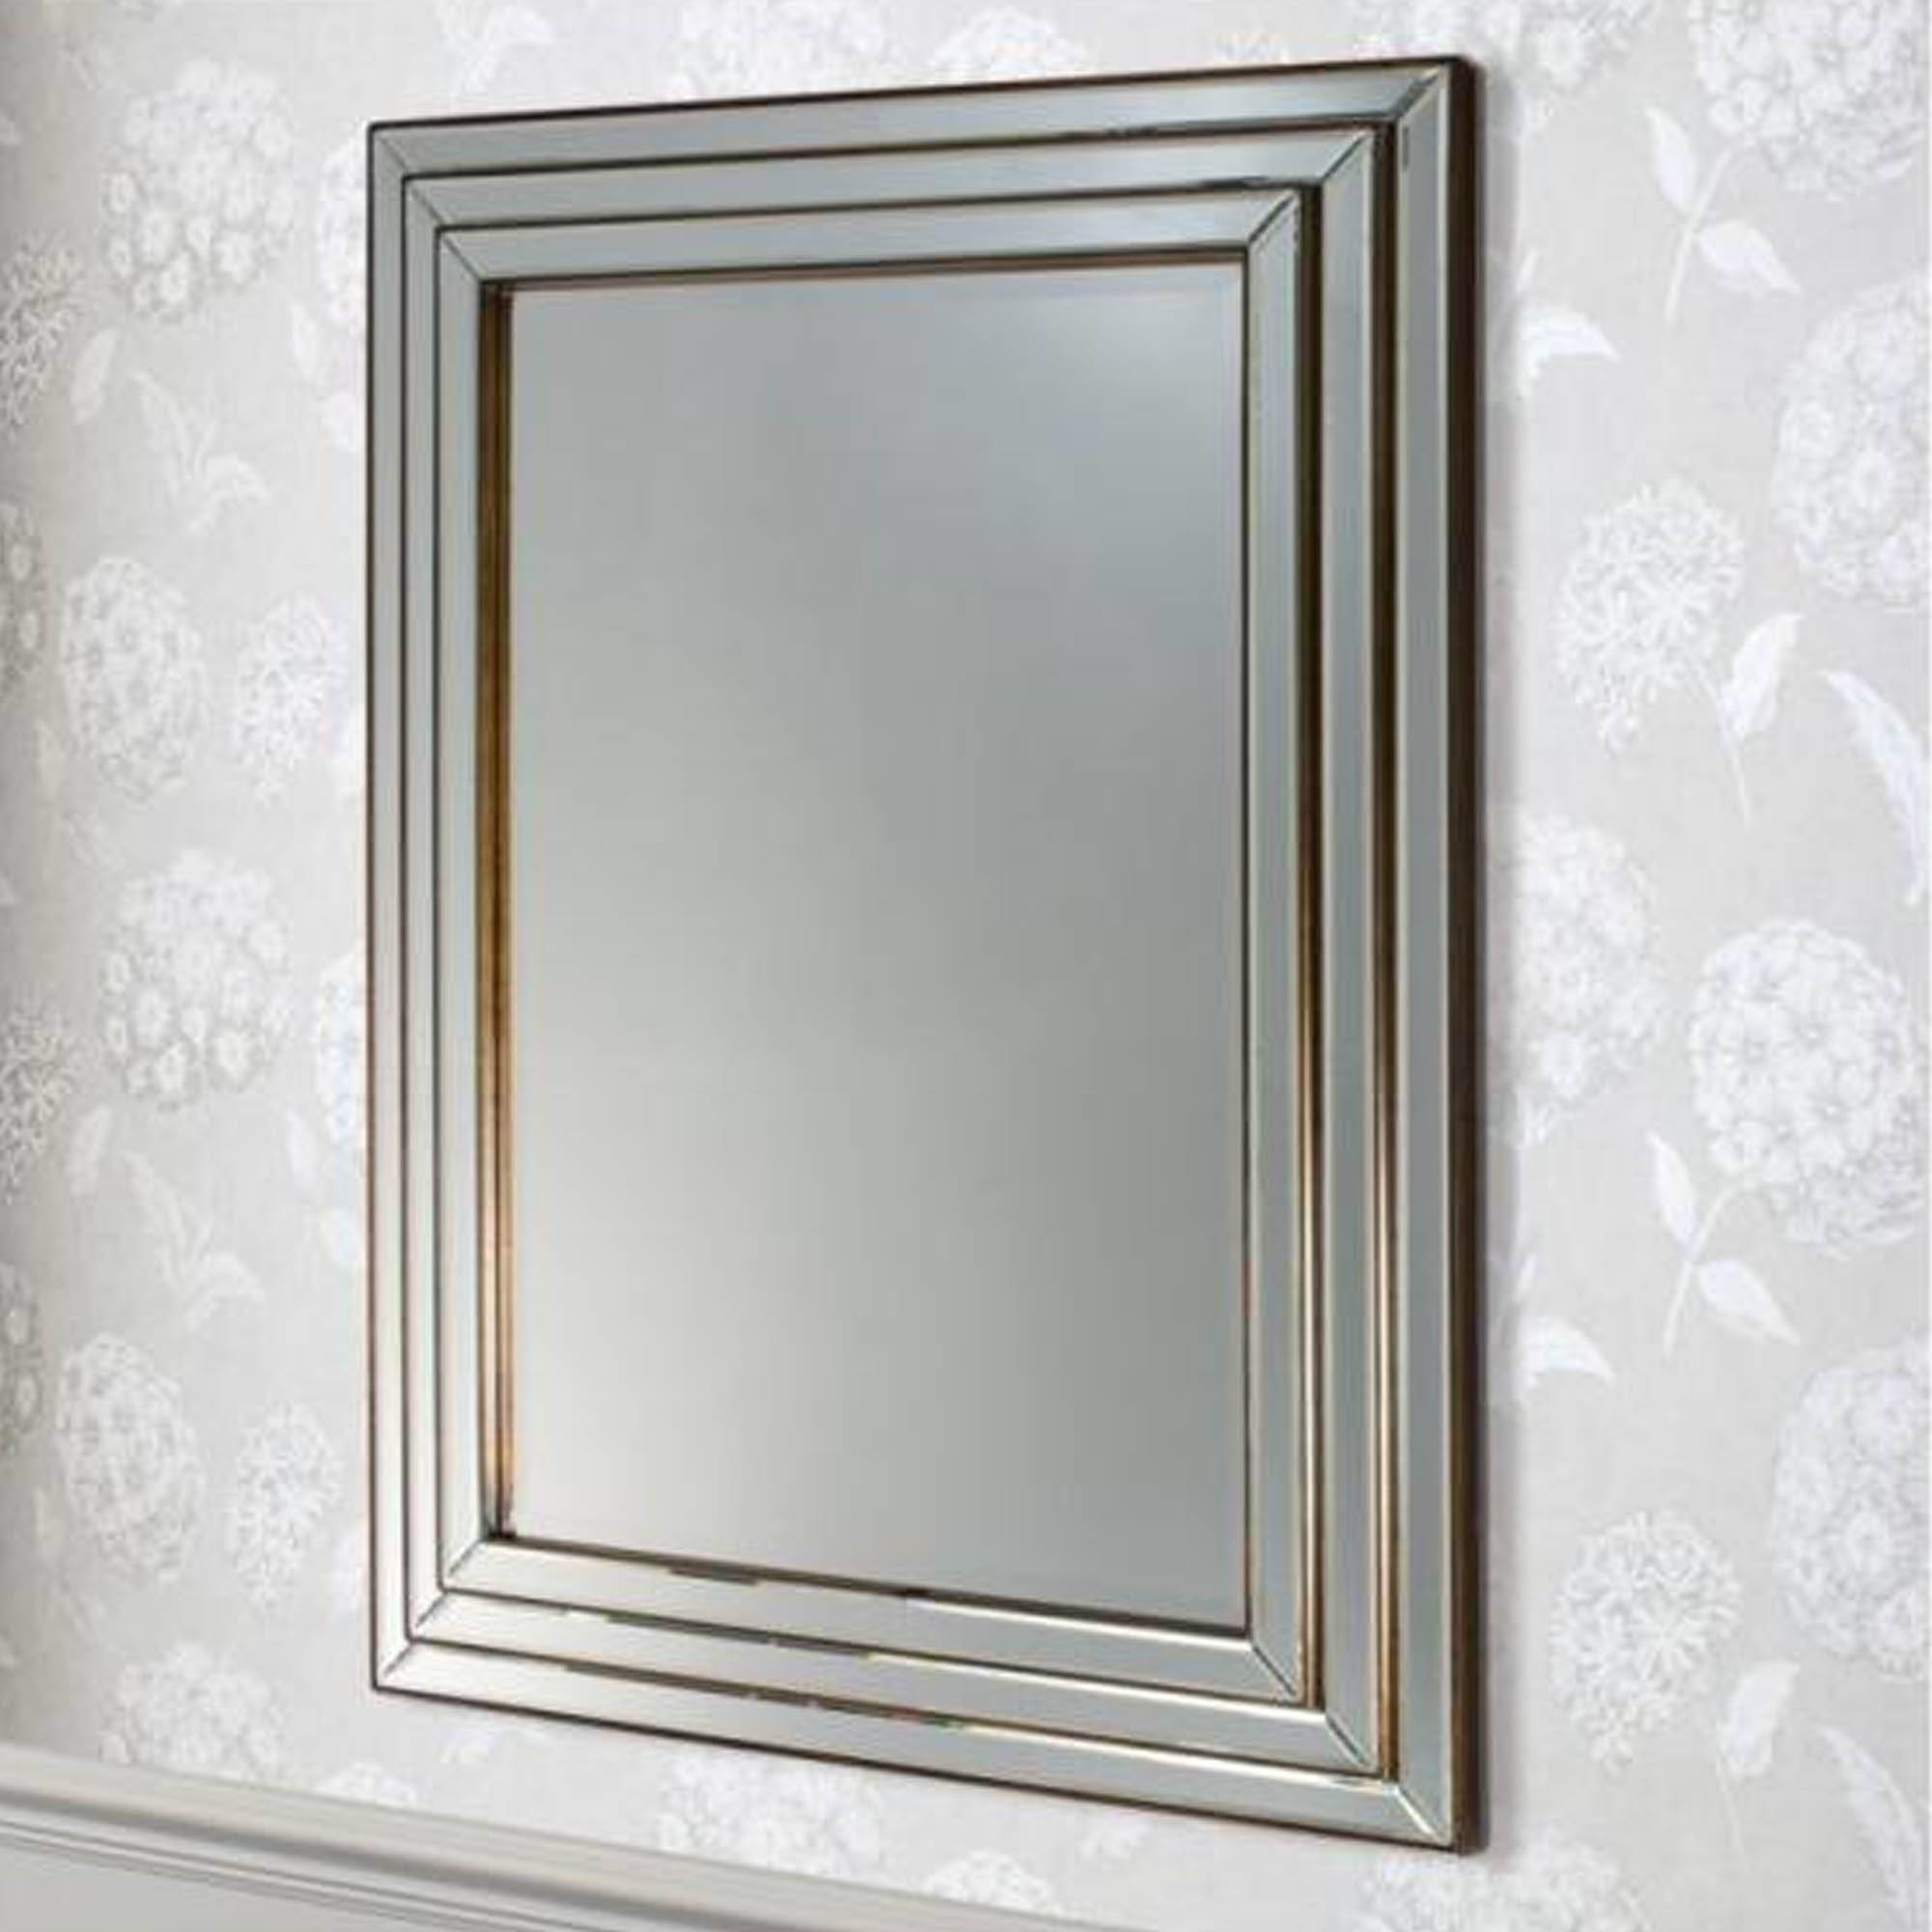 Chamberry Bronze Wall Mirror | Wall Mirror | Homesdirect365 pertaining to Bronze Wall Mirrors (Image 4 of 25)